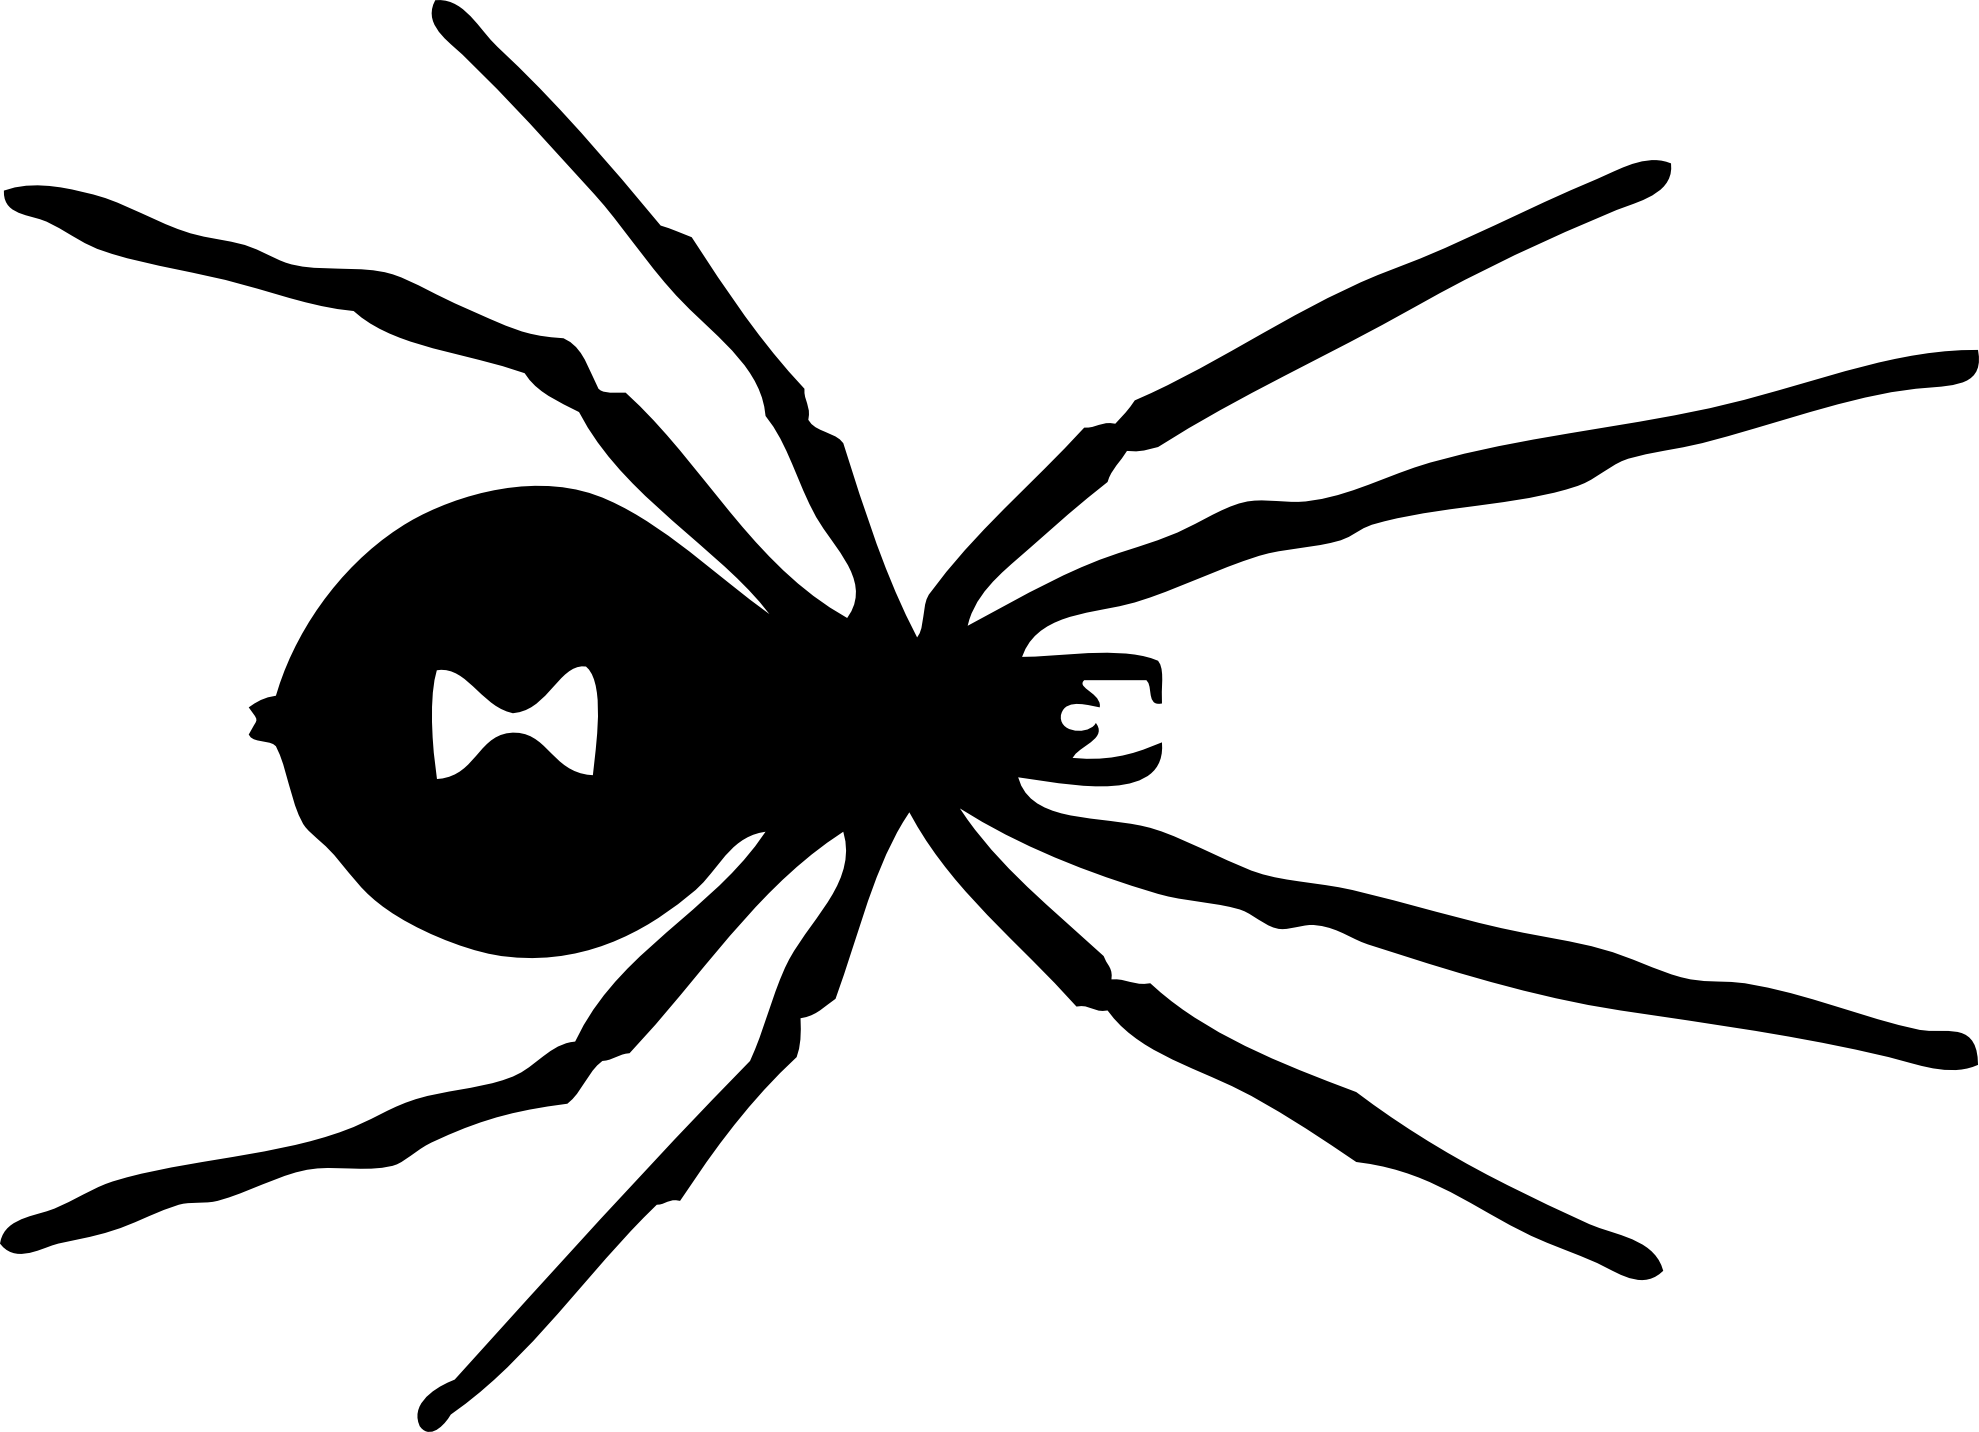 svg library download Spider and web clipart. Black white panda free